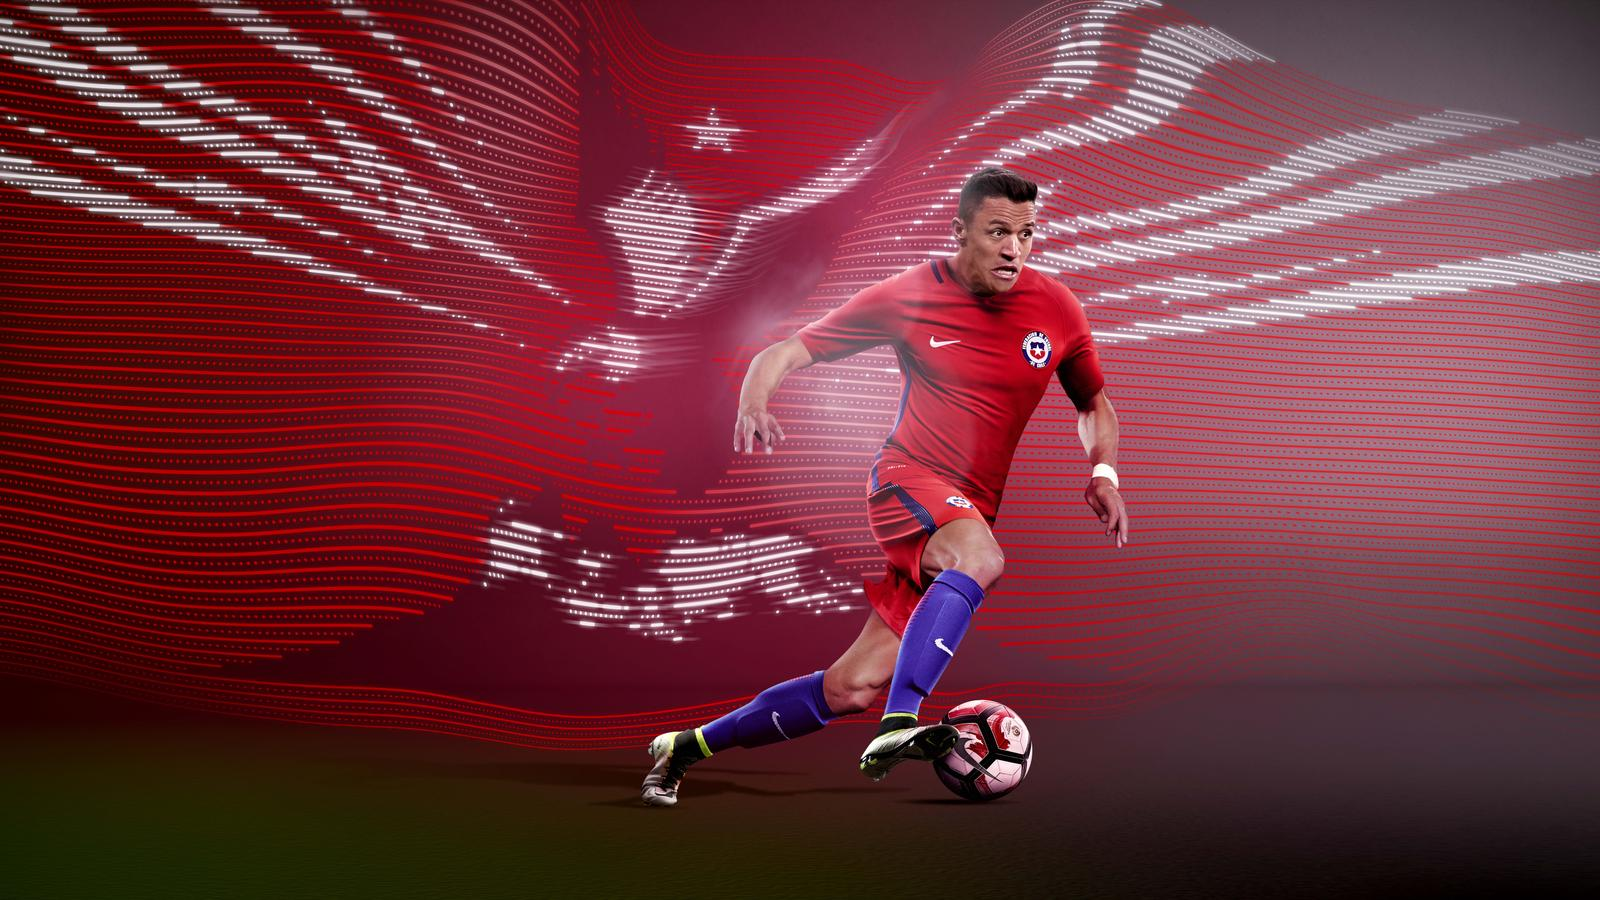 Chile 2016 National Football Kits